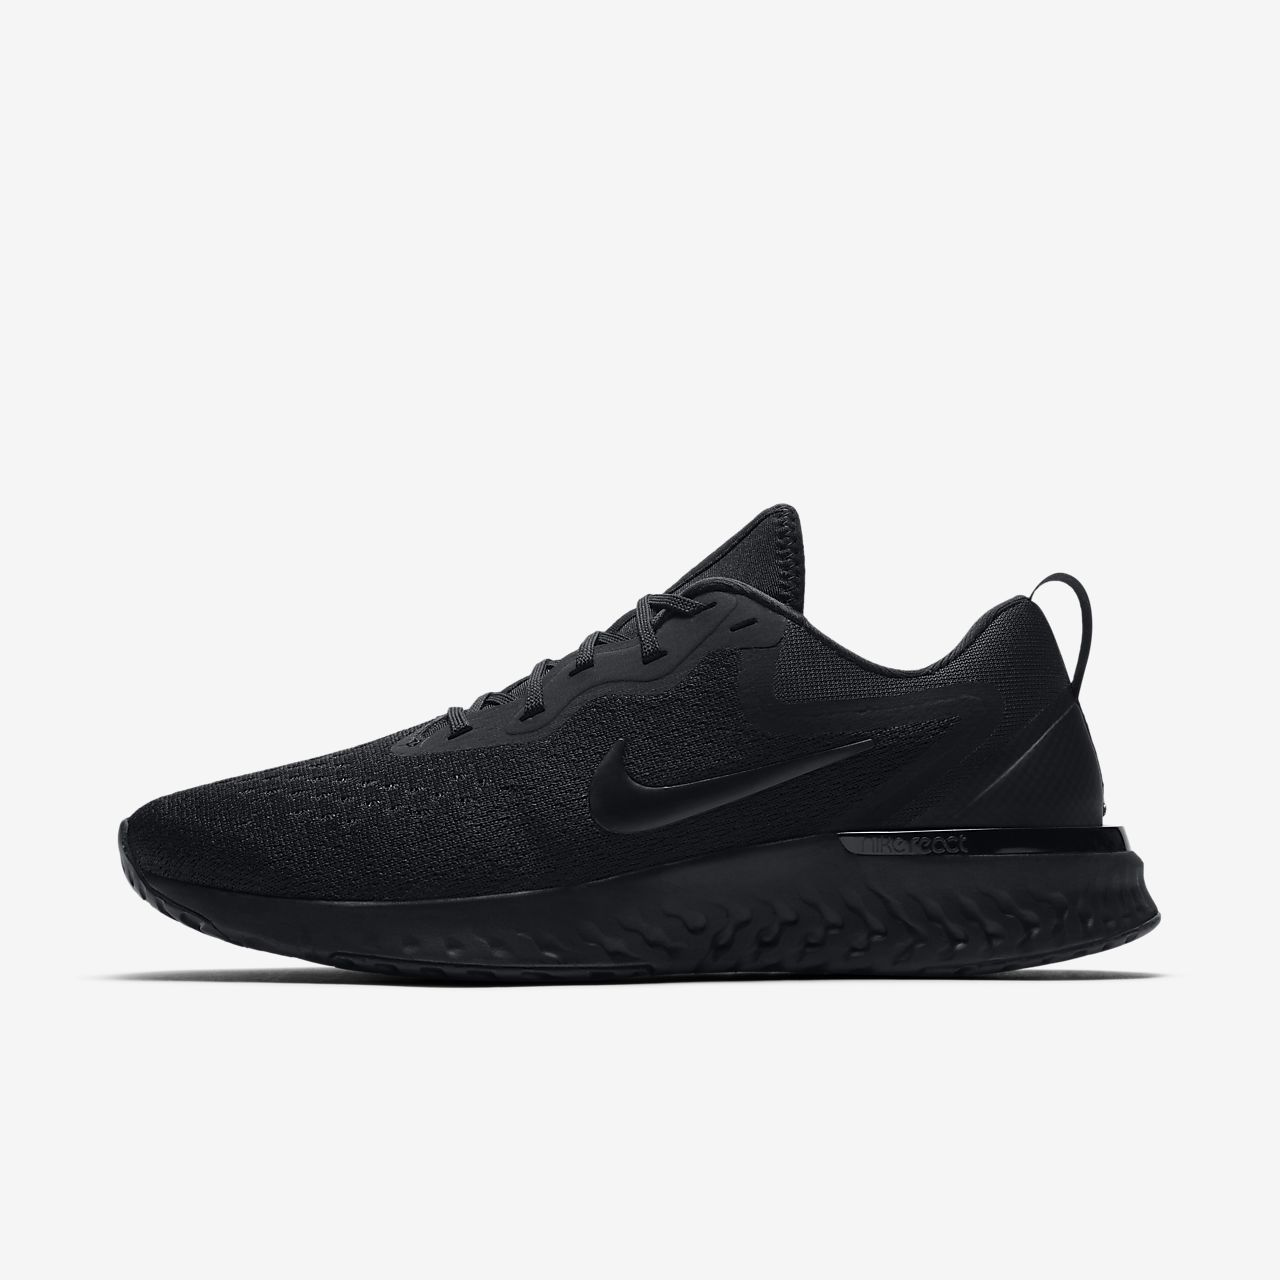 Nike Wmns Odyssey React Triple Black Women Running Shoes Sneakers AO9820010